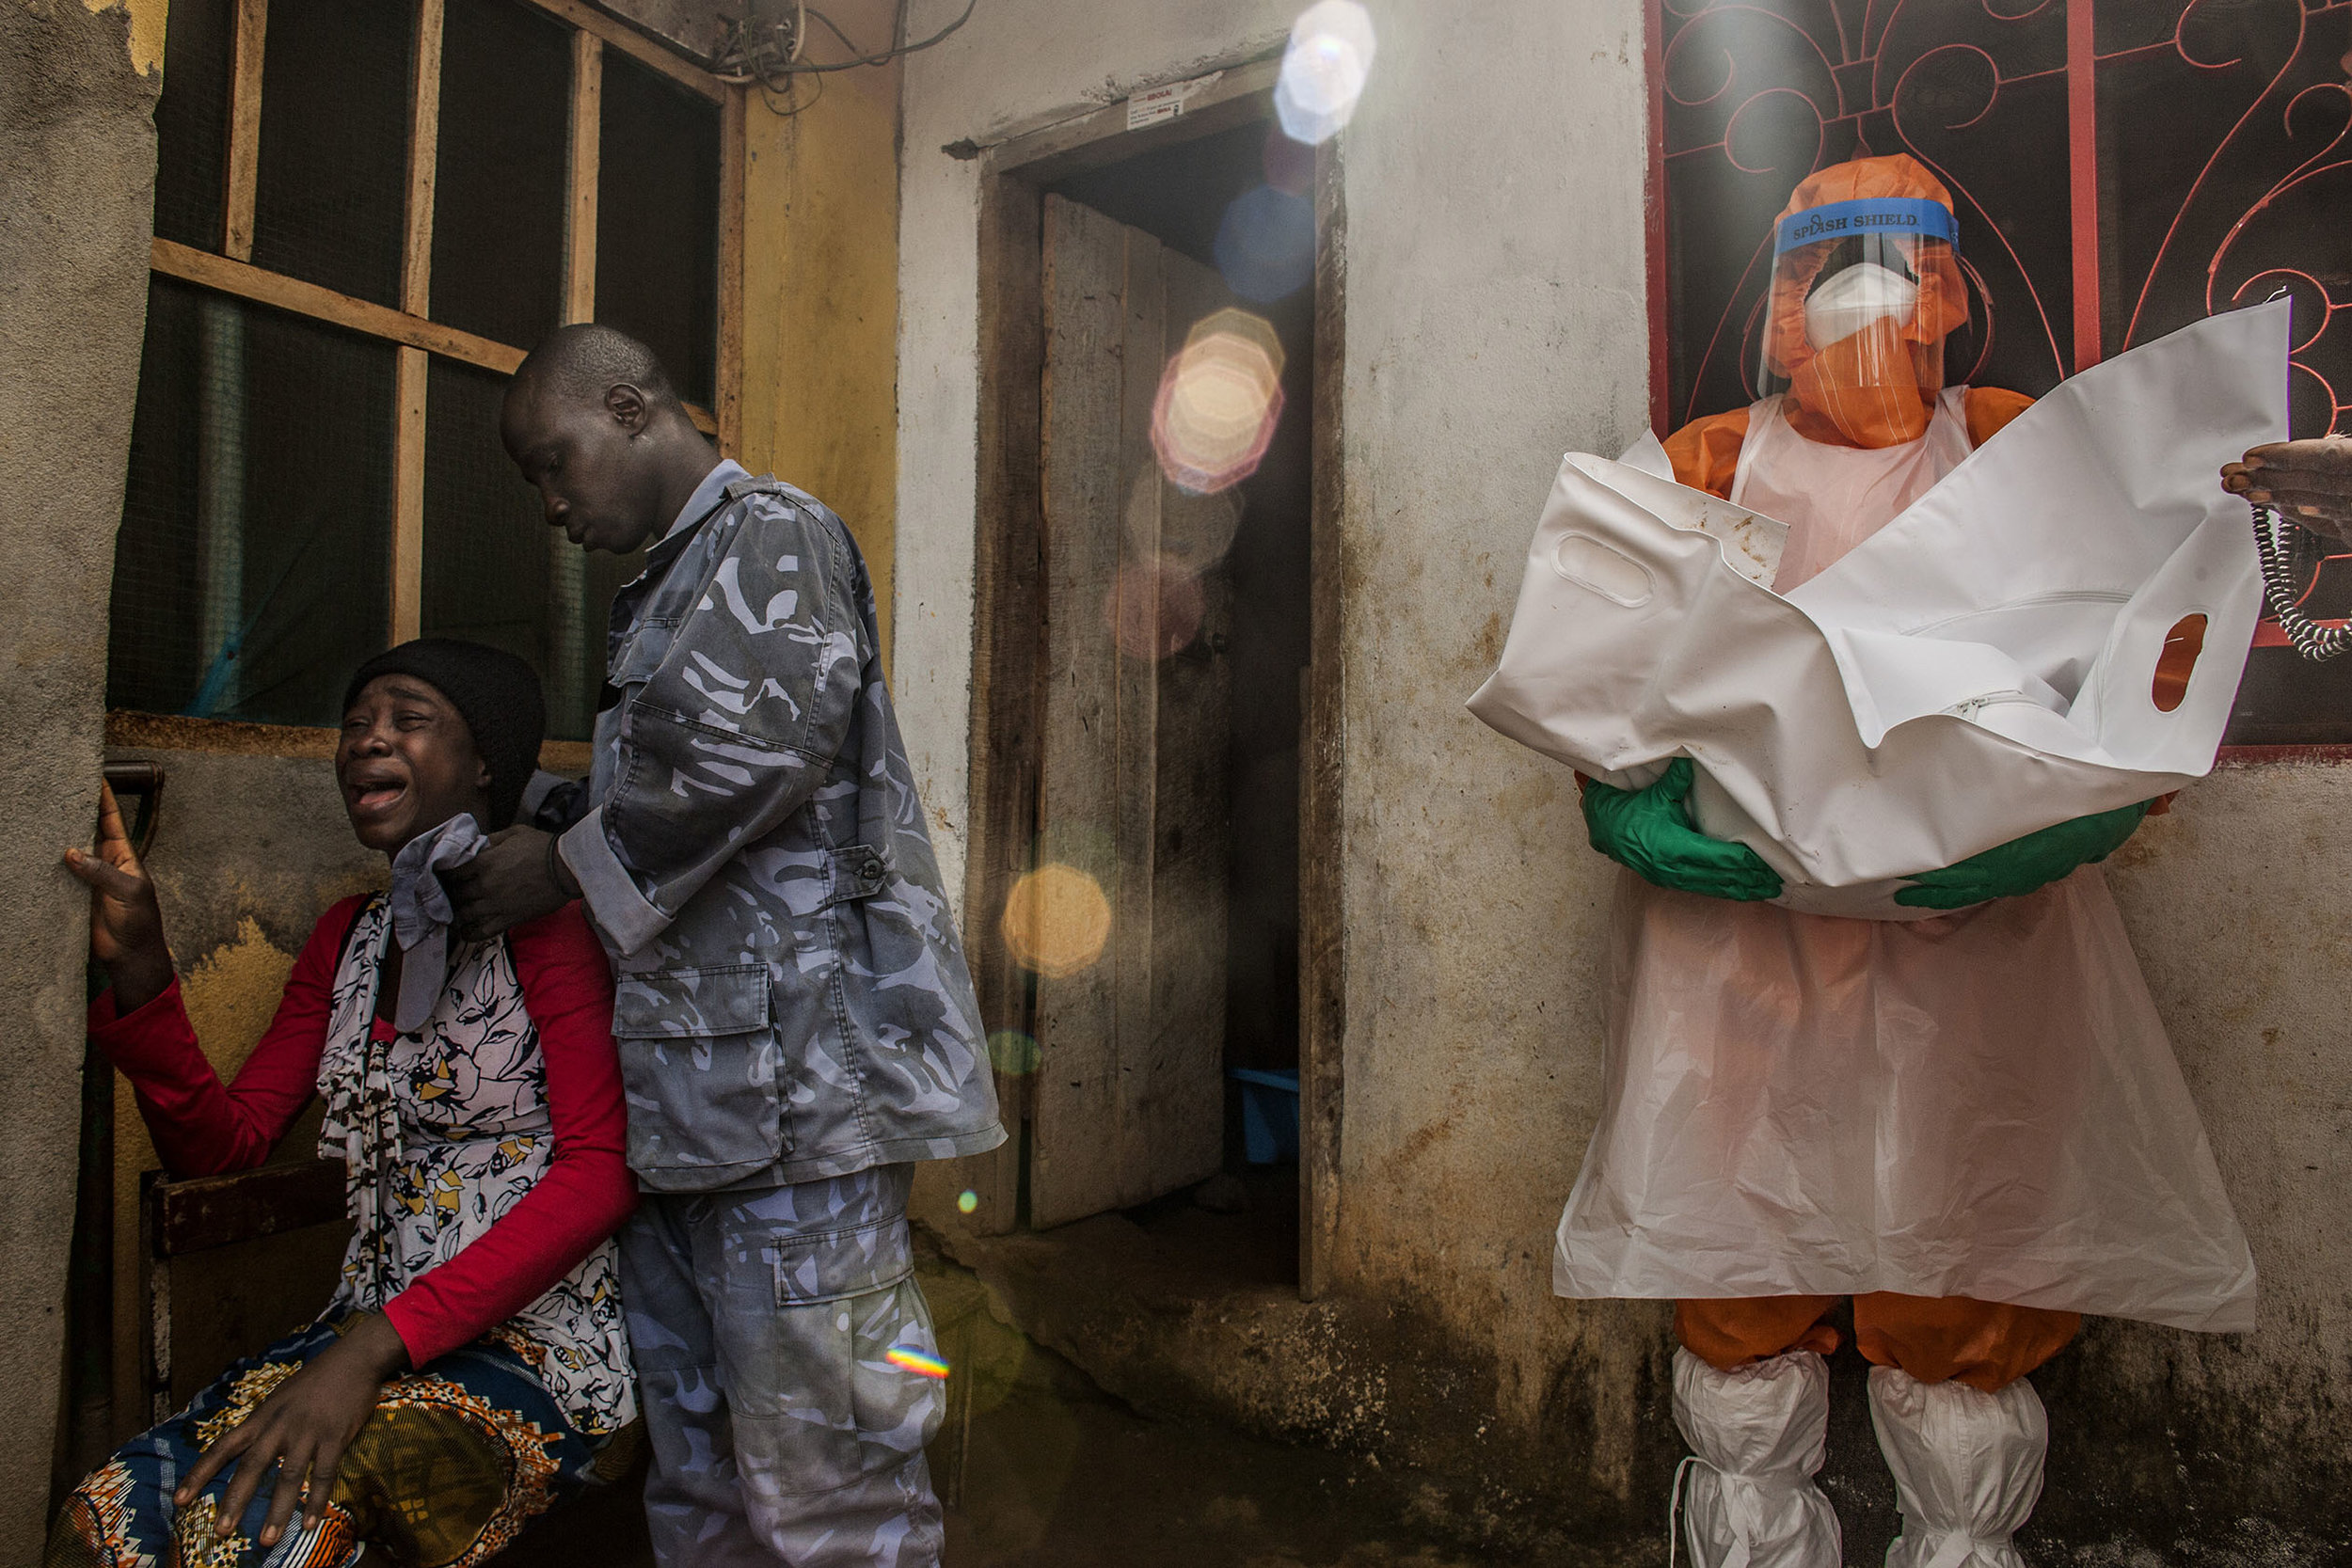 The Kabia family mourns as the body of their 1-day-old baby is removed by a member of a safe burial team outside their home in the Hill Cut neighborhood of Freetown, Sierra Leone on Wednesday, November 26, 2014. While the baby was not a confirmed Ebola case, the government of Sierra Leone mandates that all deaths in heavily Ebola-affected districts be treated as potential Ebola cases and buried in accordance with strict safety procedures. The bodies of Ebola victims are extremely infections and contact with them is a major source of disease transmission.  (Pete Muller/Prime for National Geographic)